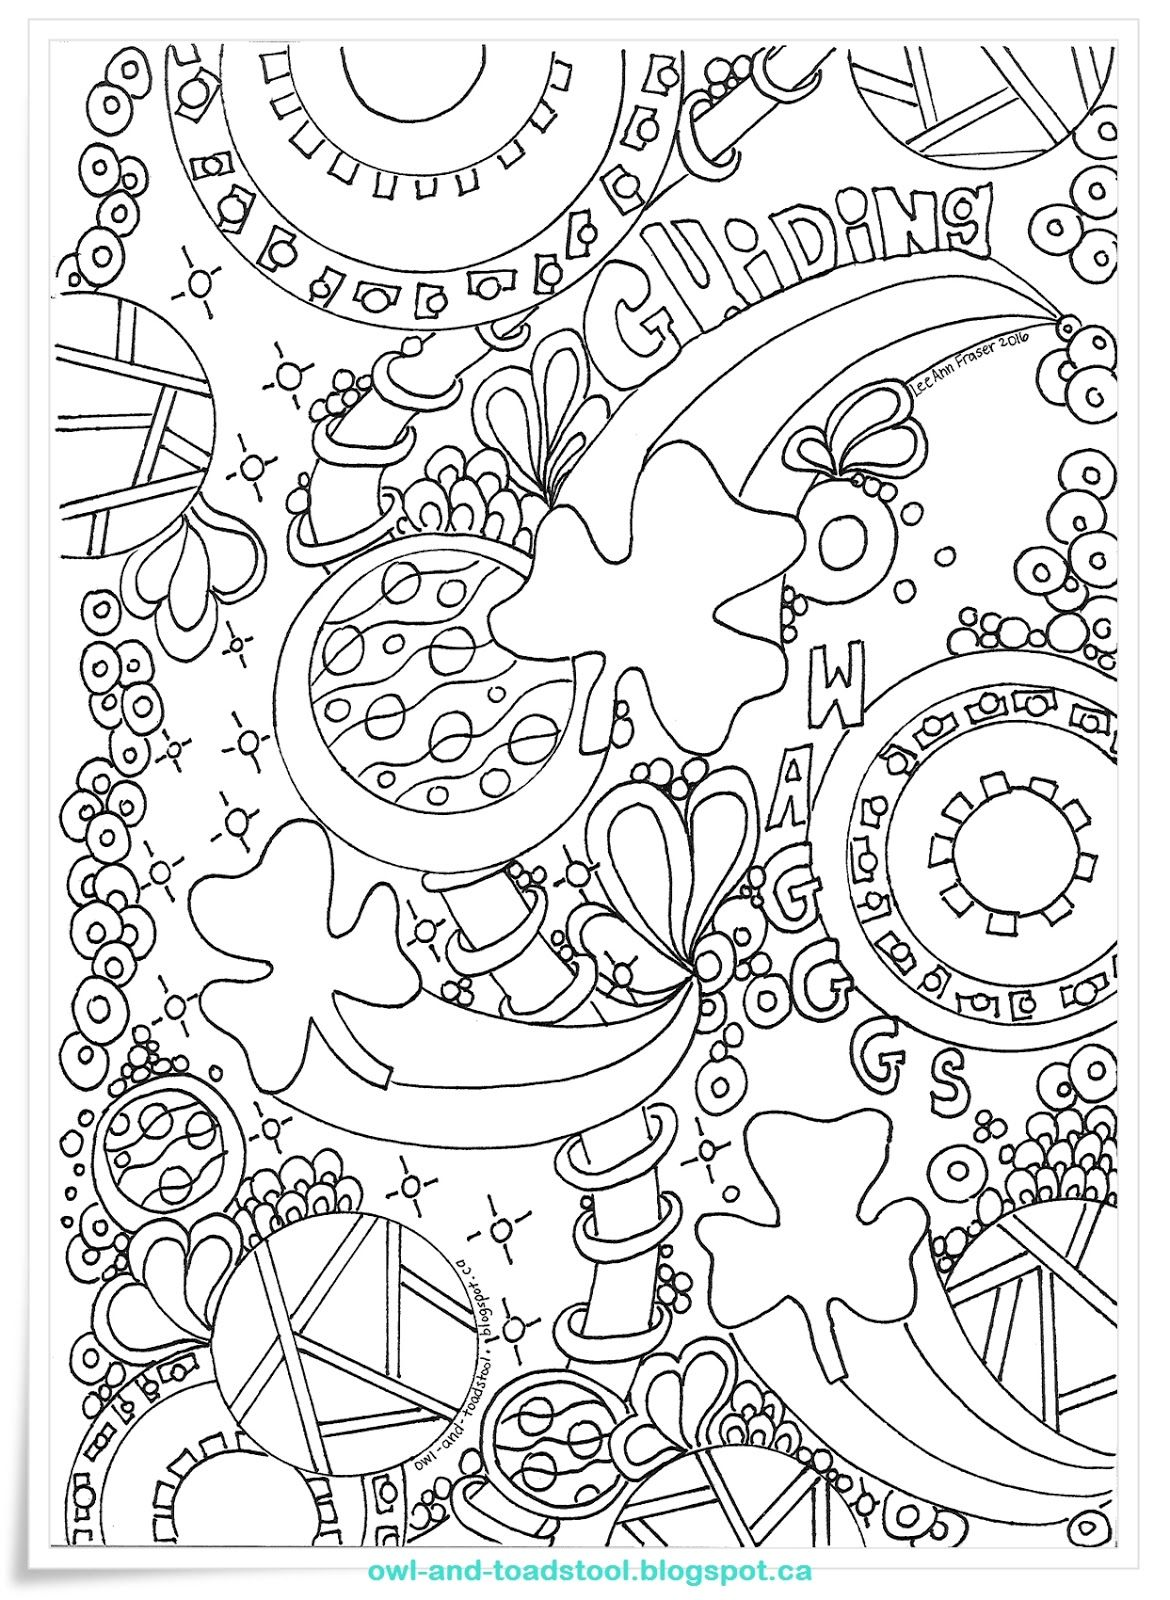 Owl & Toadstool: Doodle- Guiding Wagggs | Girl Scout ideas ...